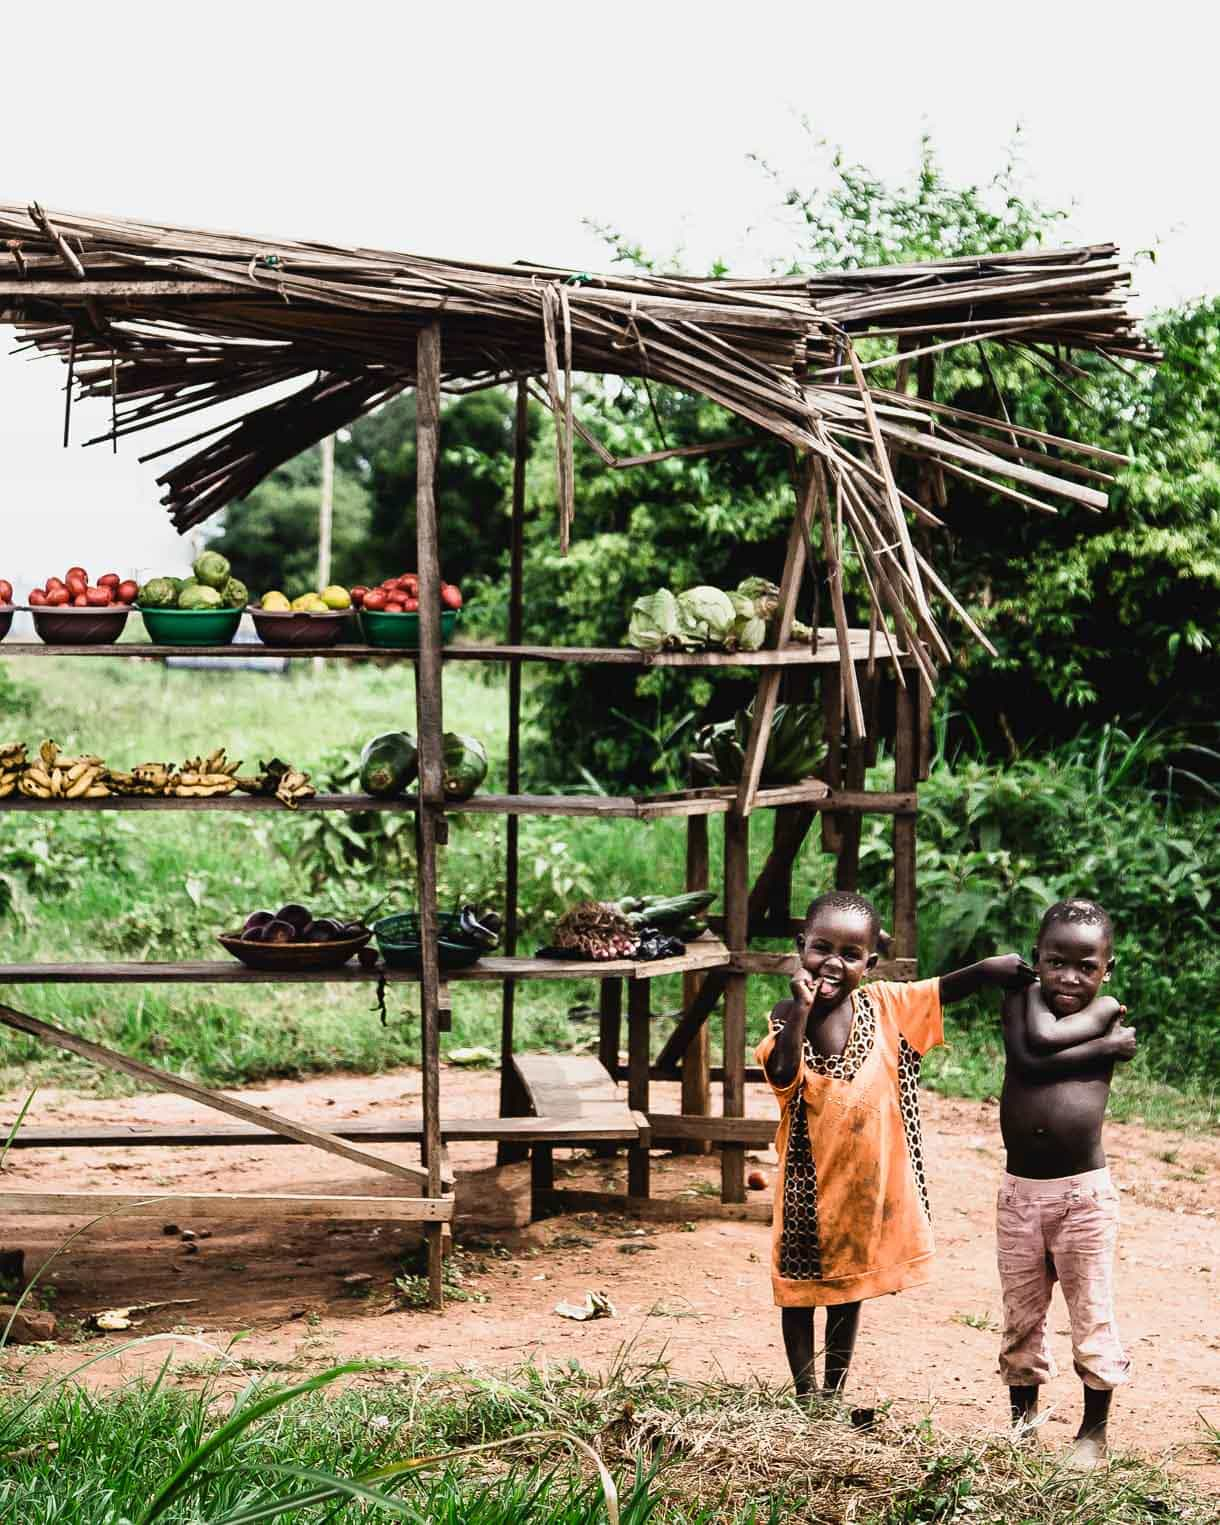 Nakivale Settlement, Uganda, Refugee Camp, children and vegetable stand